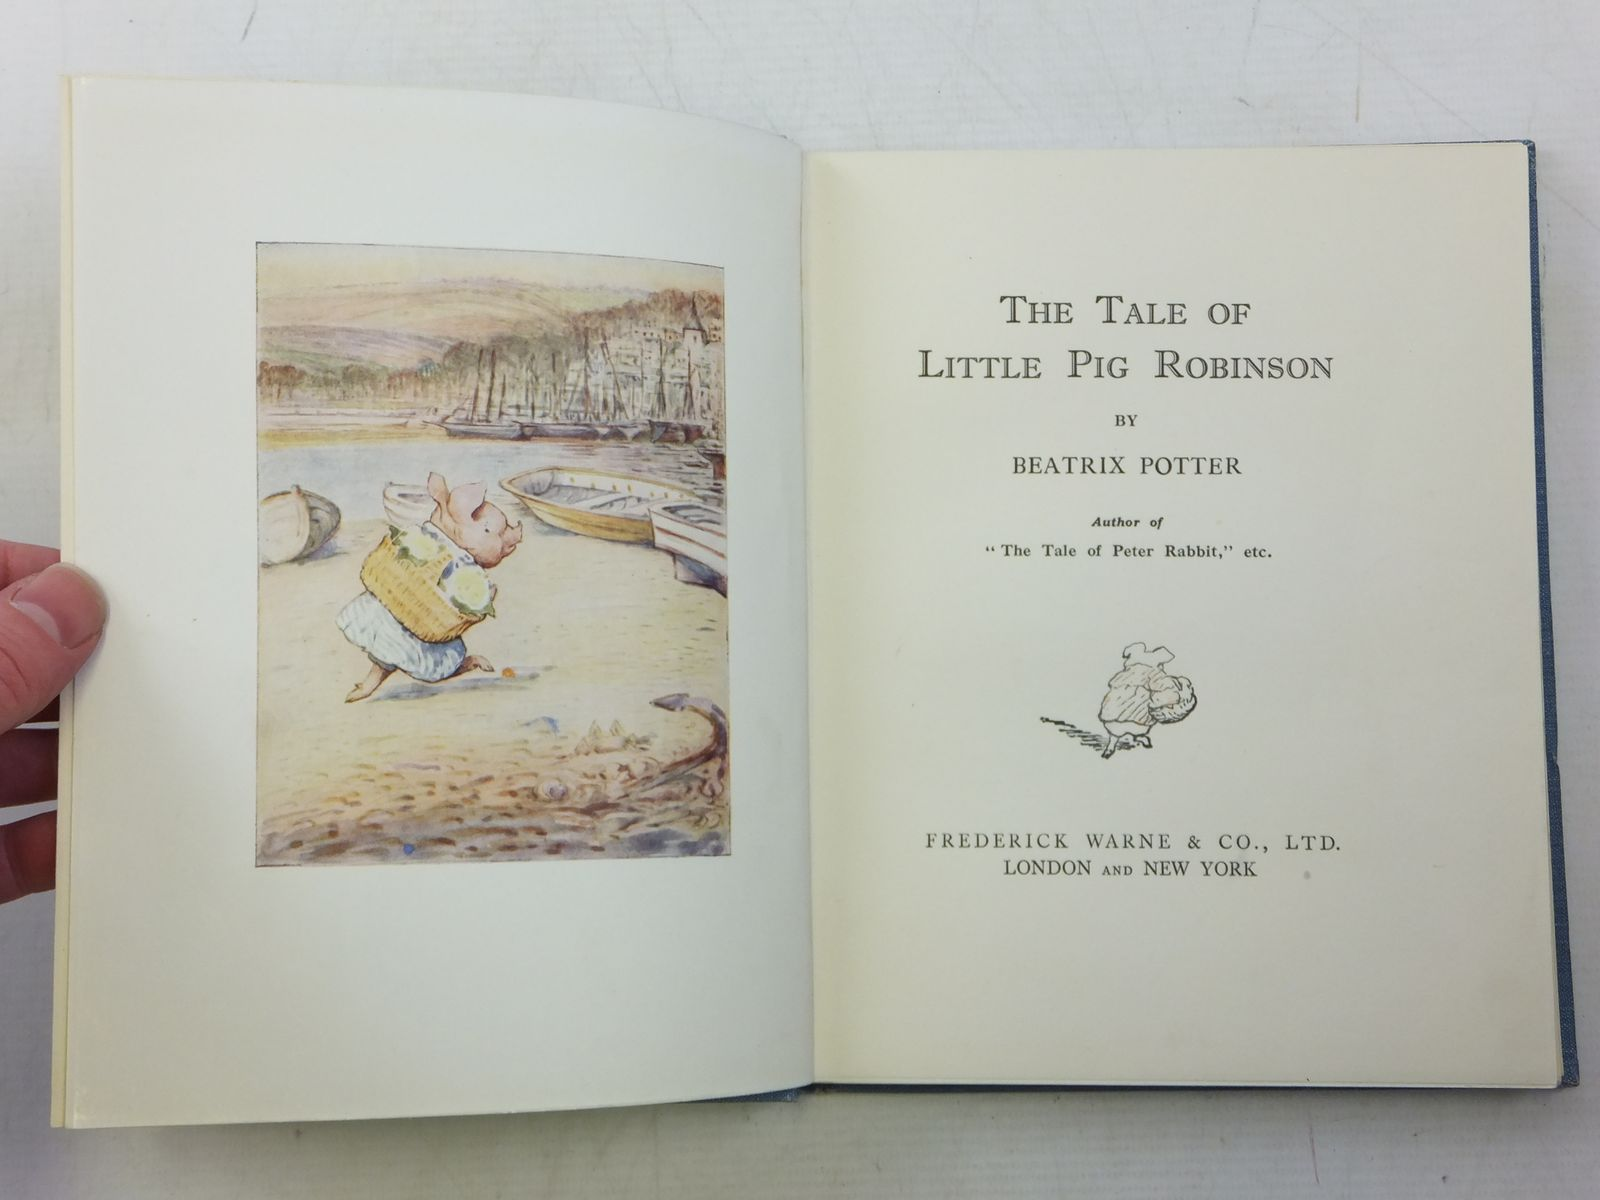 Photo of THE TALE OF LITTLE PIG ROBINSON written by Potter, Beatrix illustrated by Potter, Beatrix published by Frederick Warne & Co Ltd. (STOCK CODE: 2119700)  for sale by Stella & Rose's Books